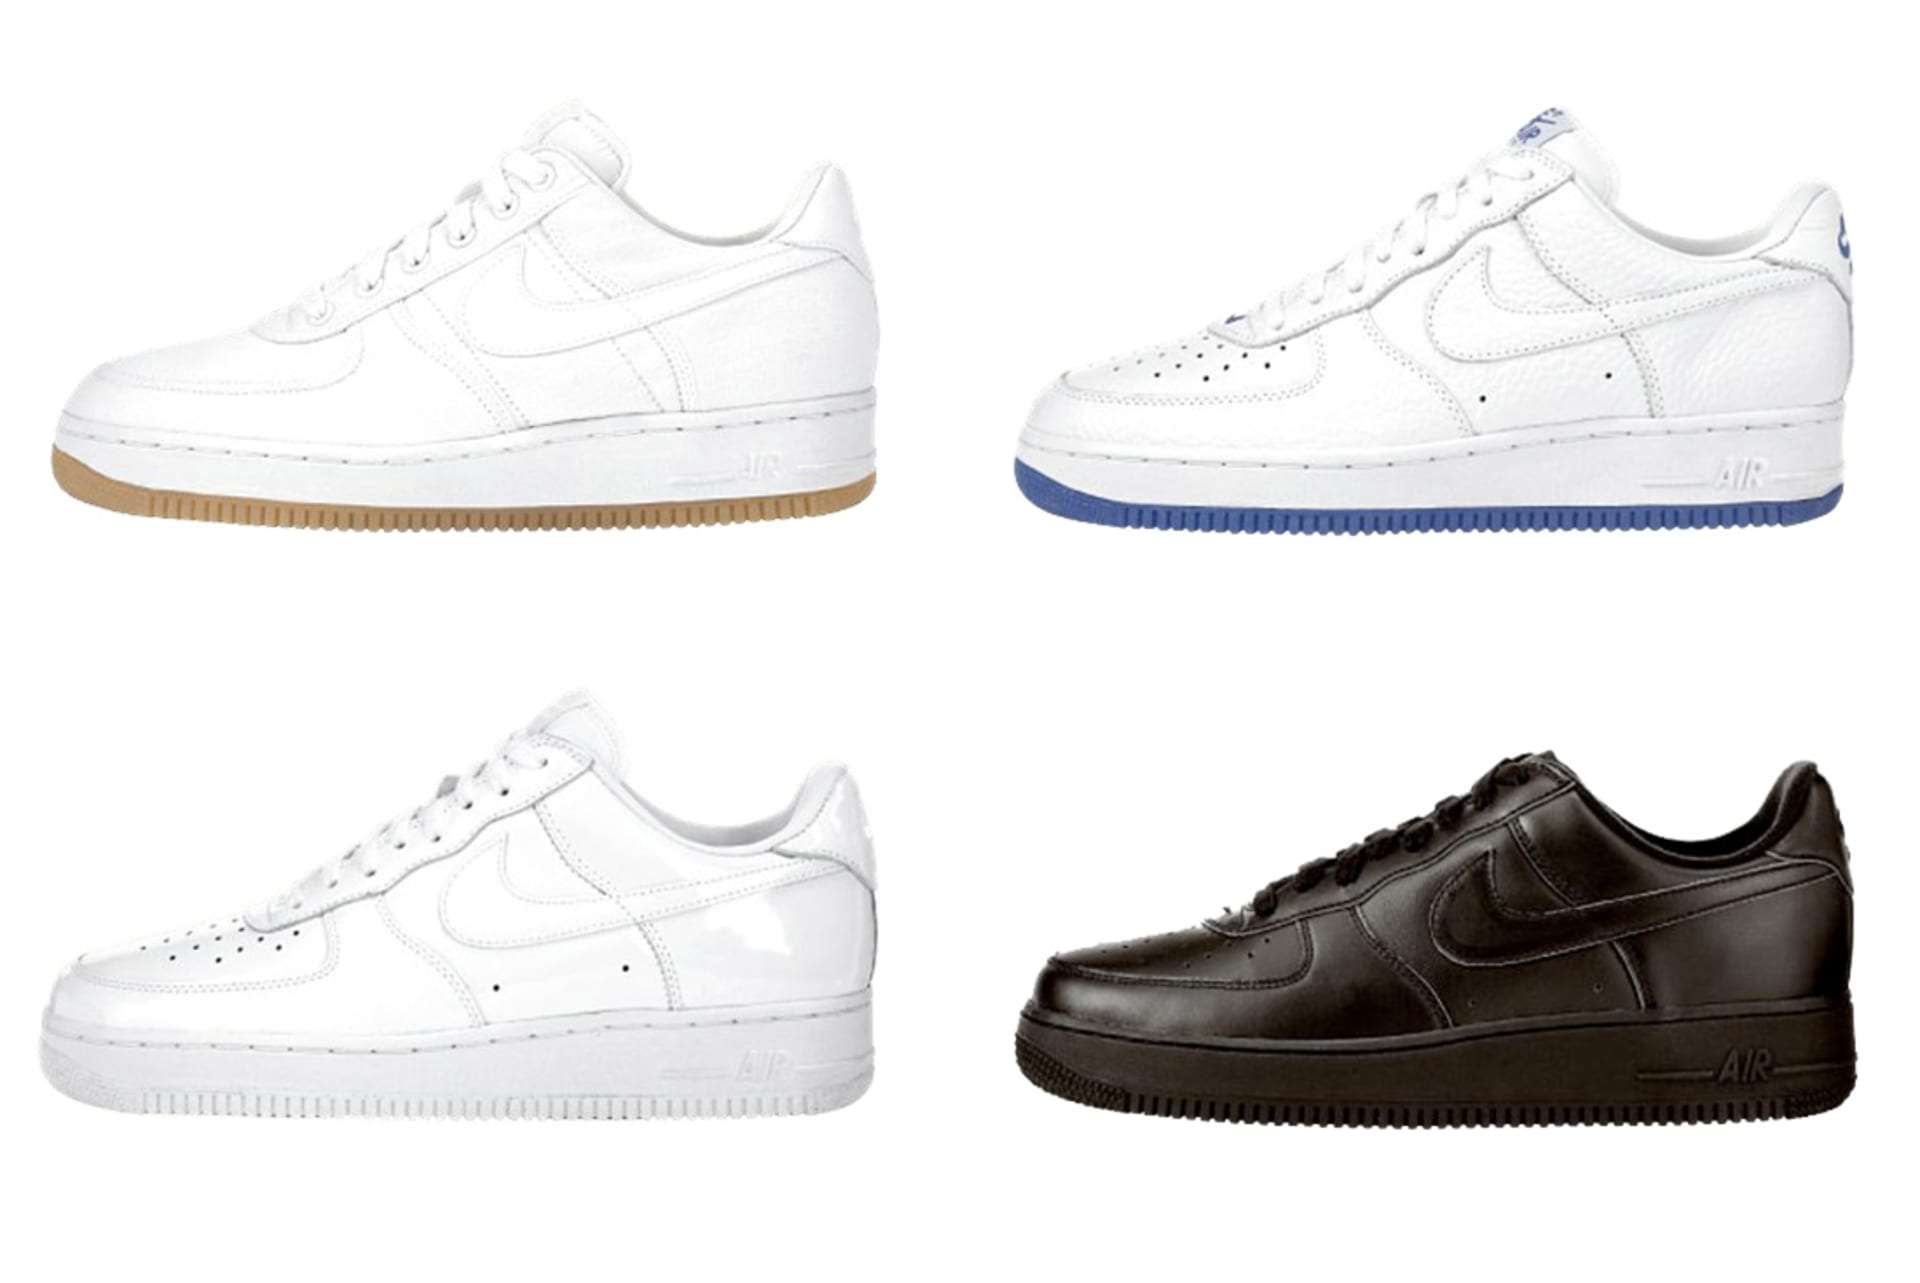 new arrival e4d6b e9e79 1996 Nike Air Force 1